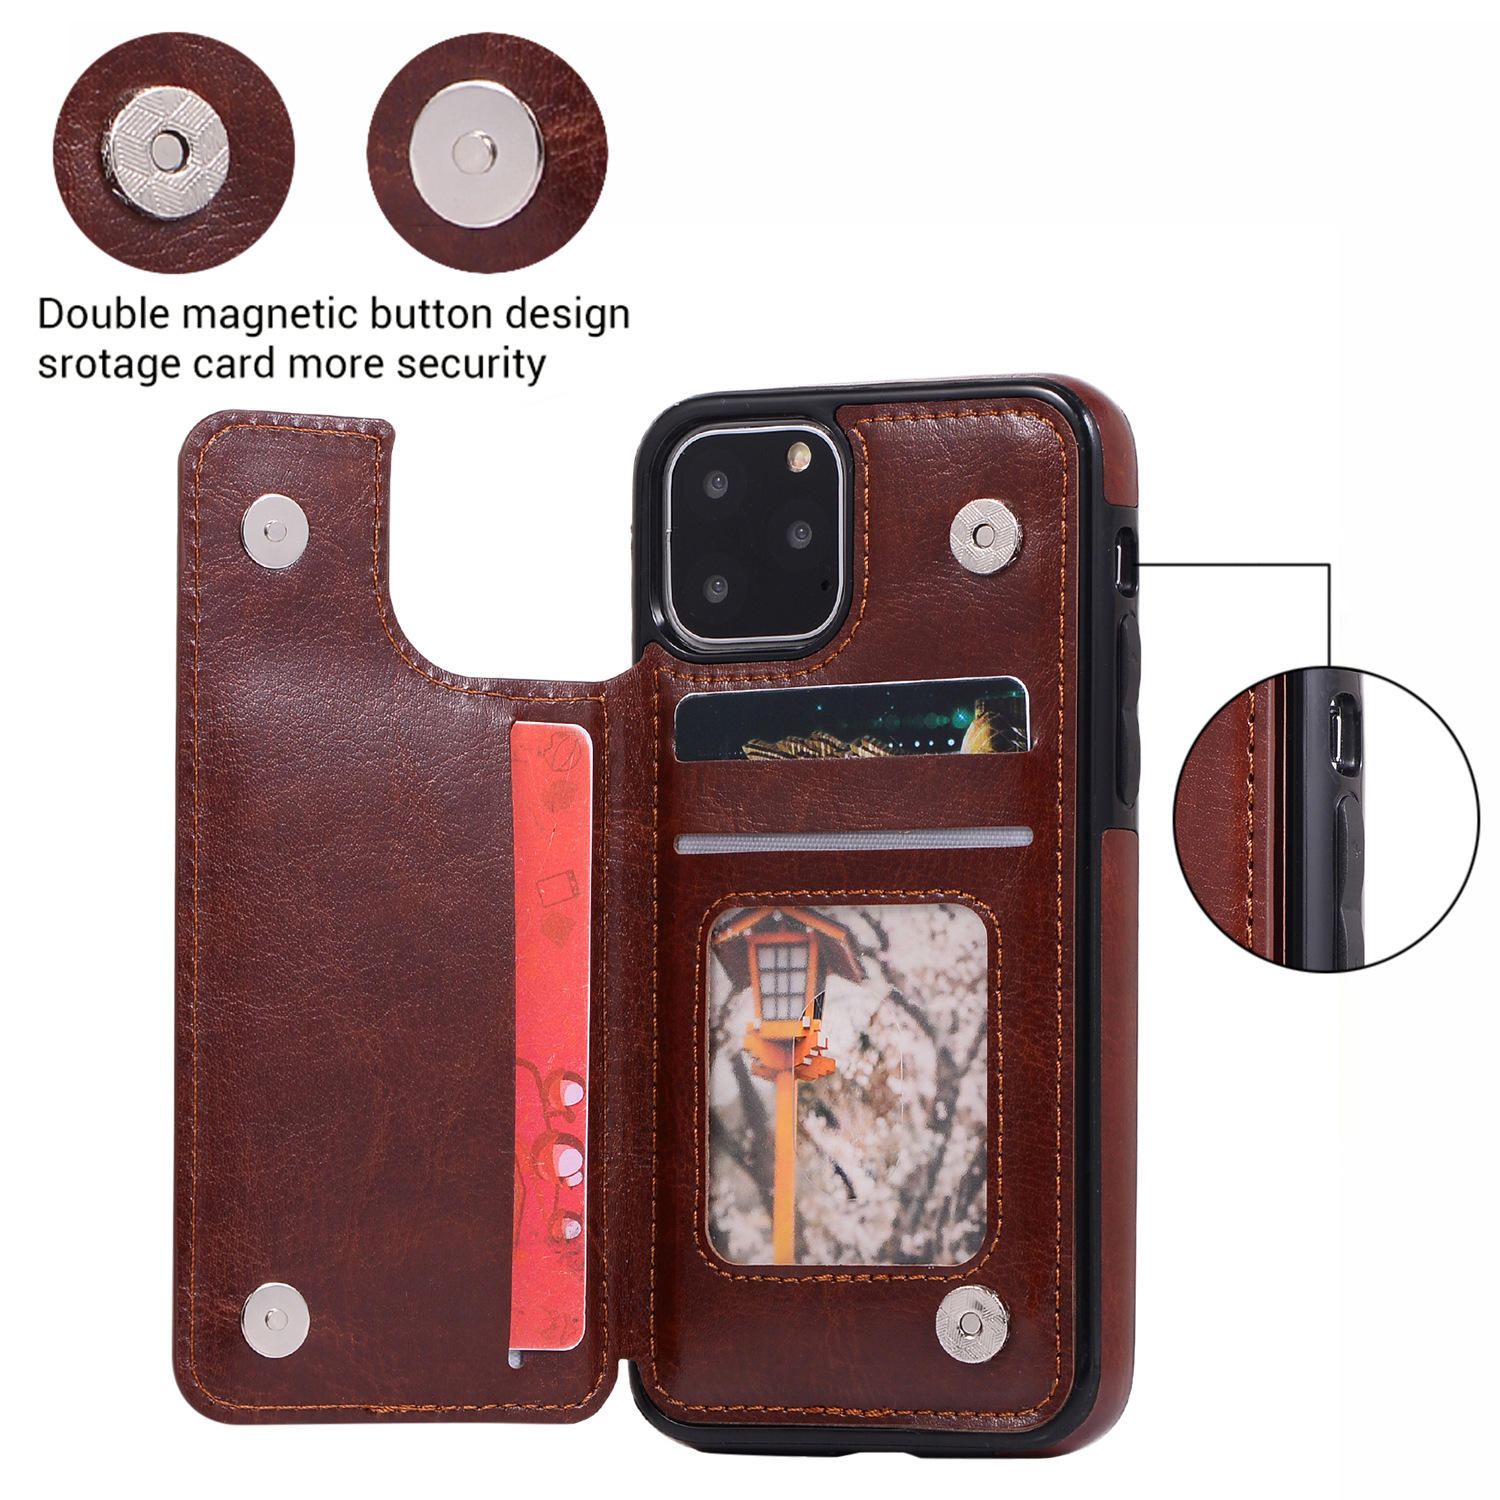 2020 Newest Magnetic Flip Card Holder Case Bag for iPhone 11 pro PU Flip Wallet Leather Case for iPhone 5 6 7 8 X